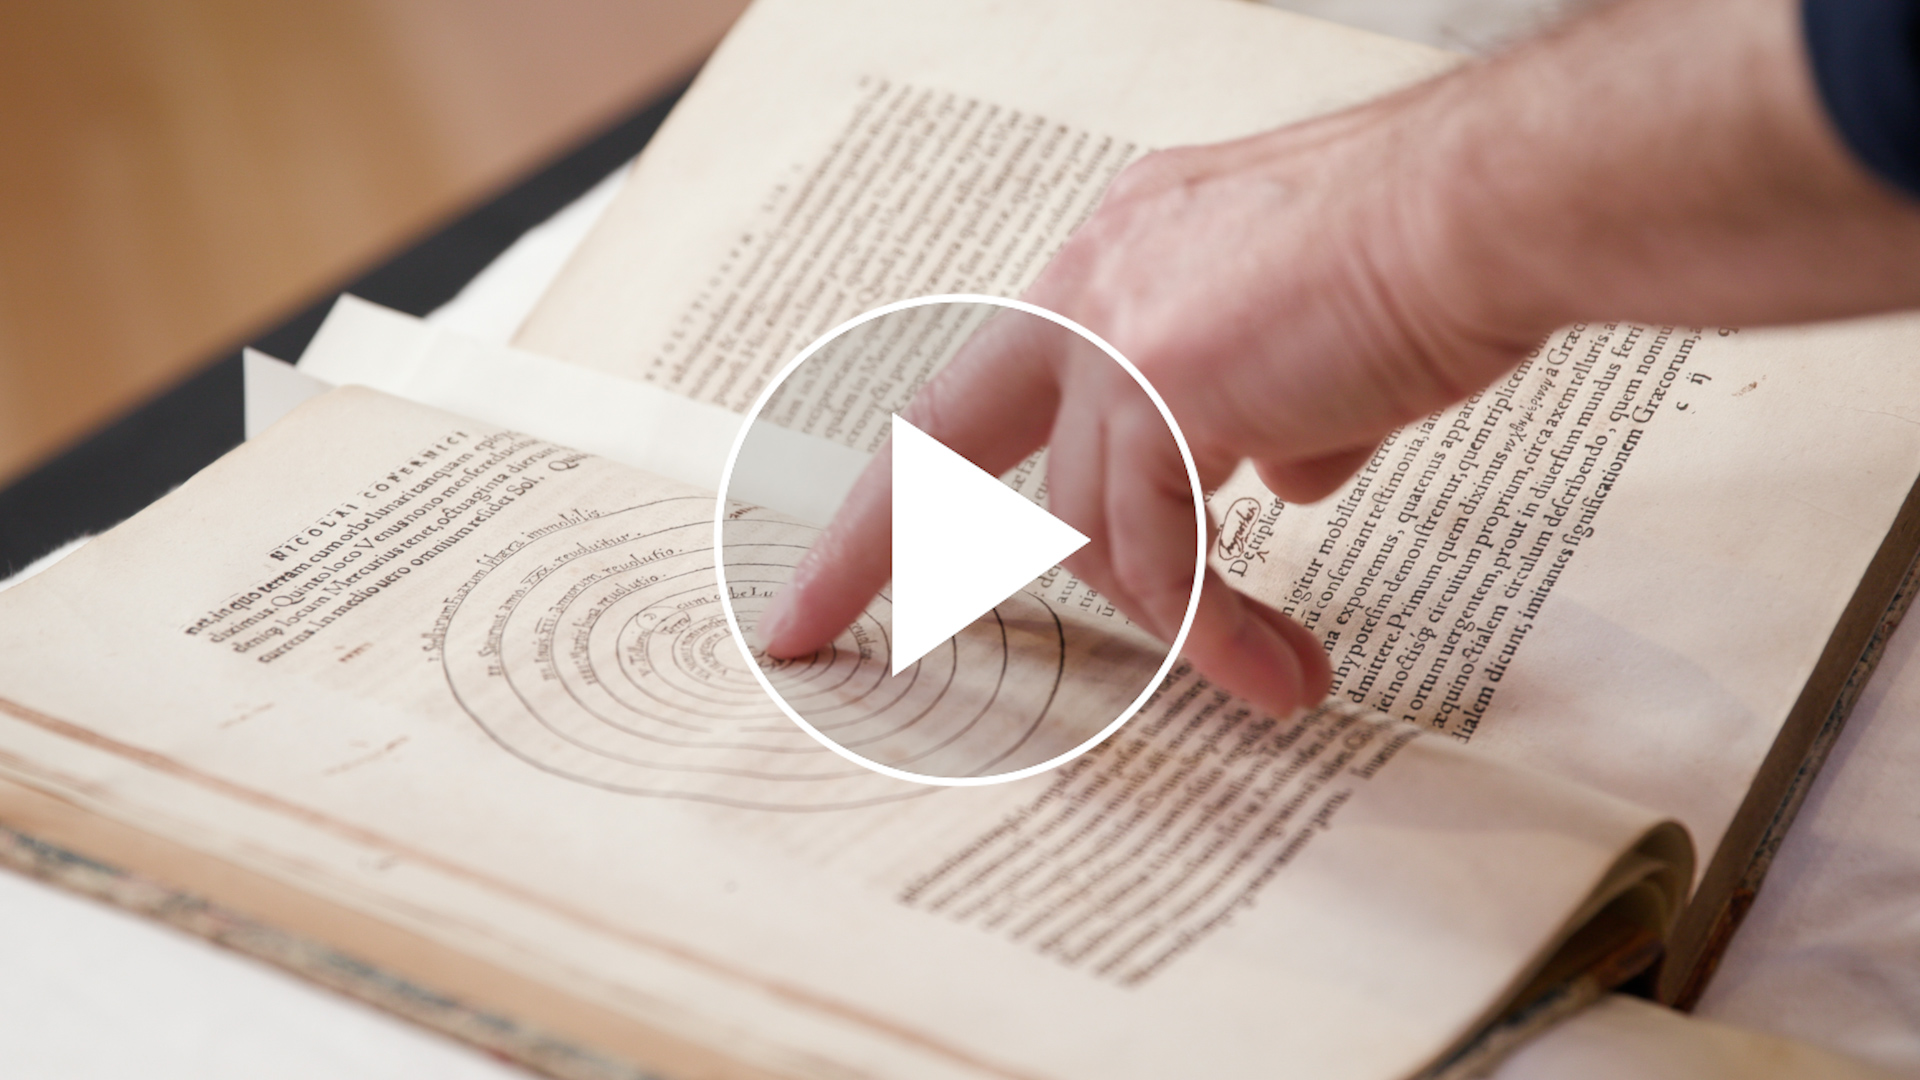 Open book with a hand tracing the words